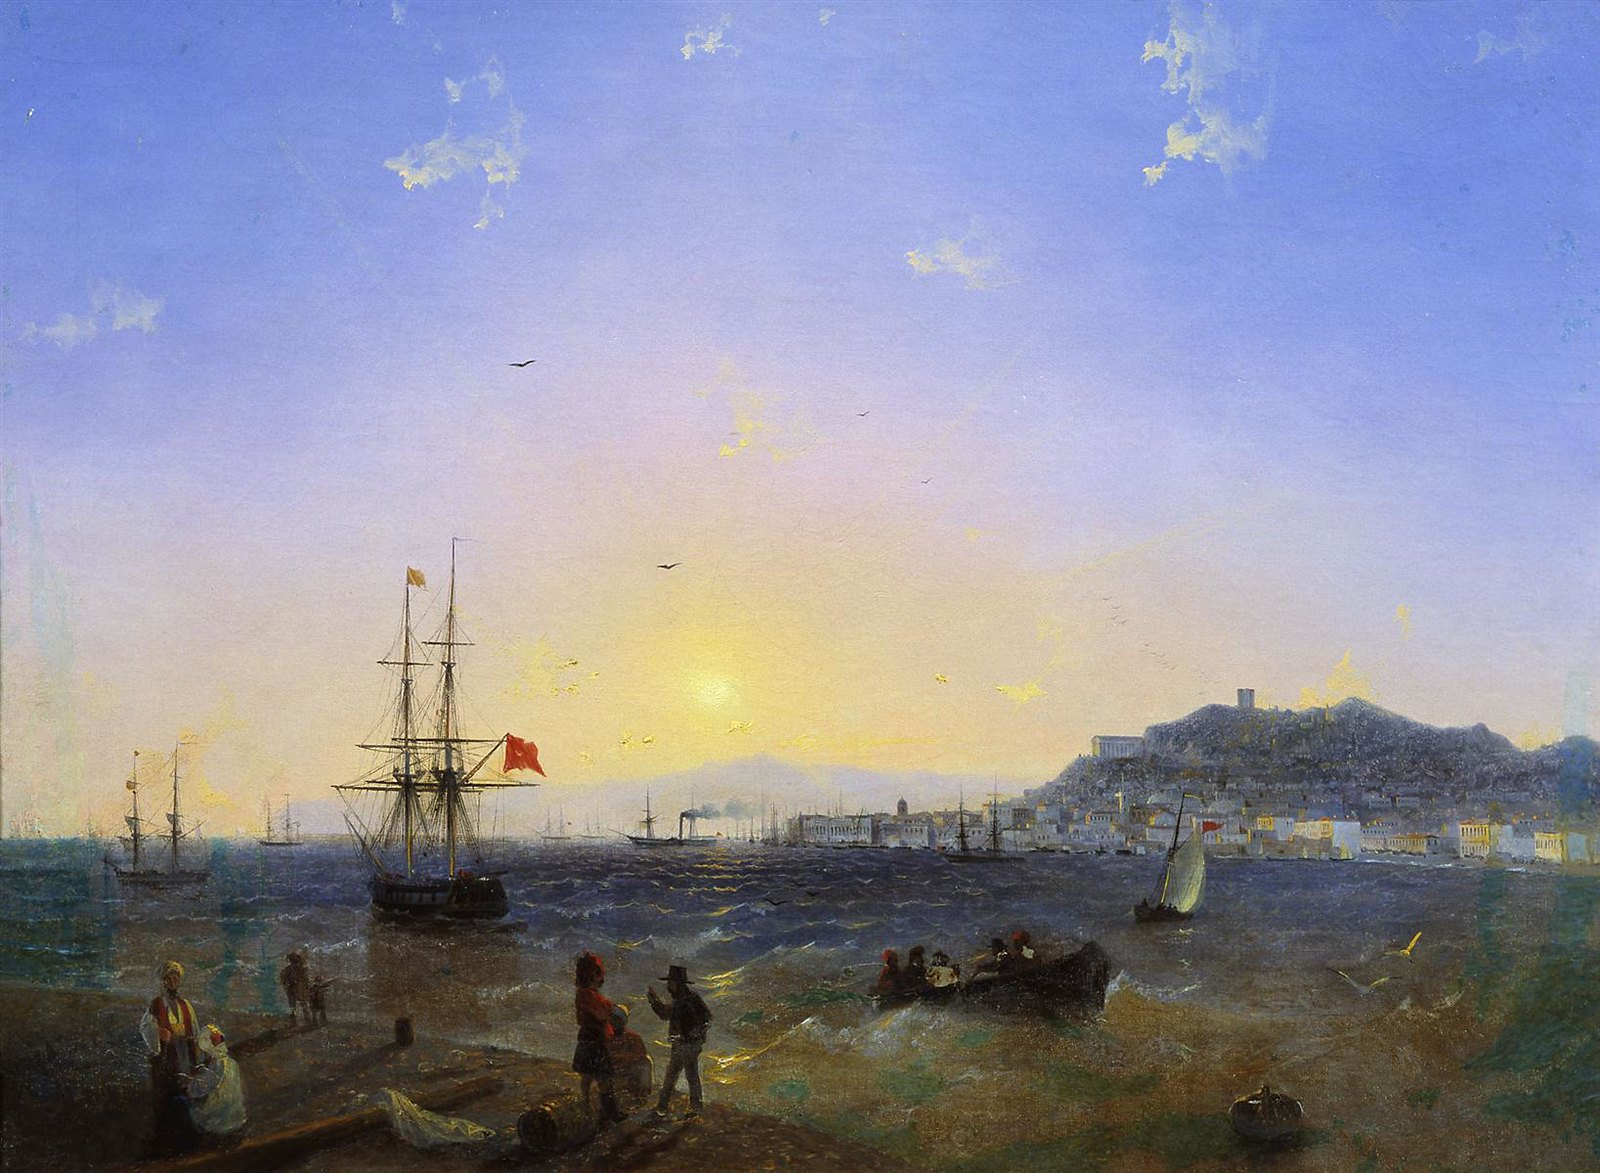 Kerch by Ivan Aivazovsky, 1839